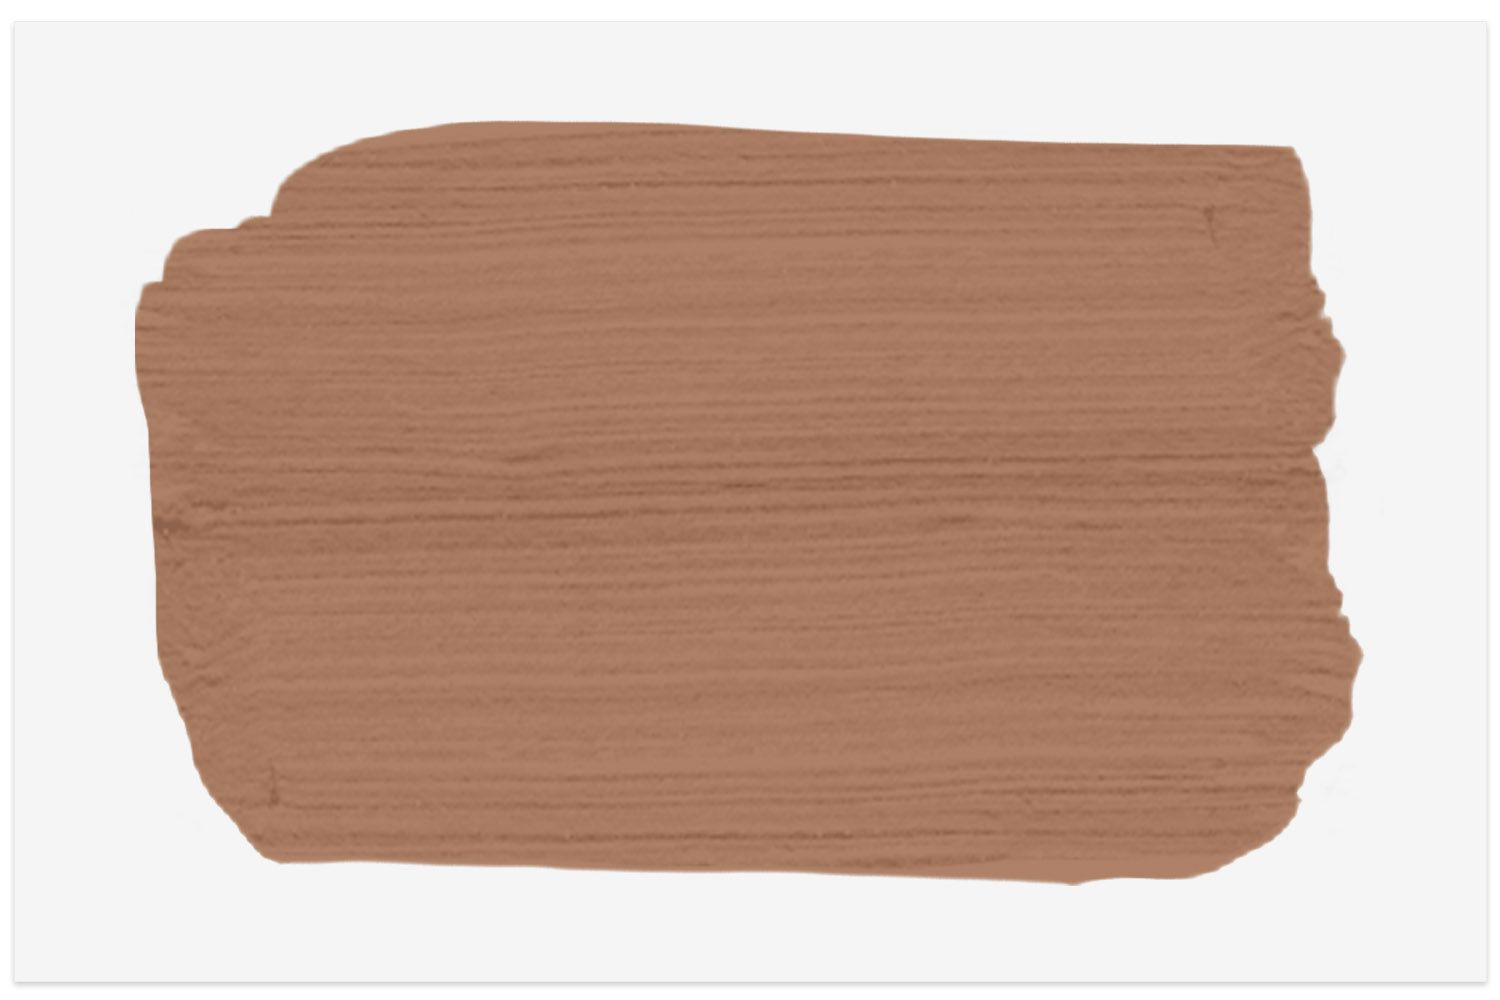 Cider Spice paint swatch from Behr